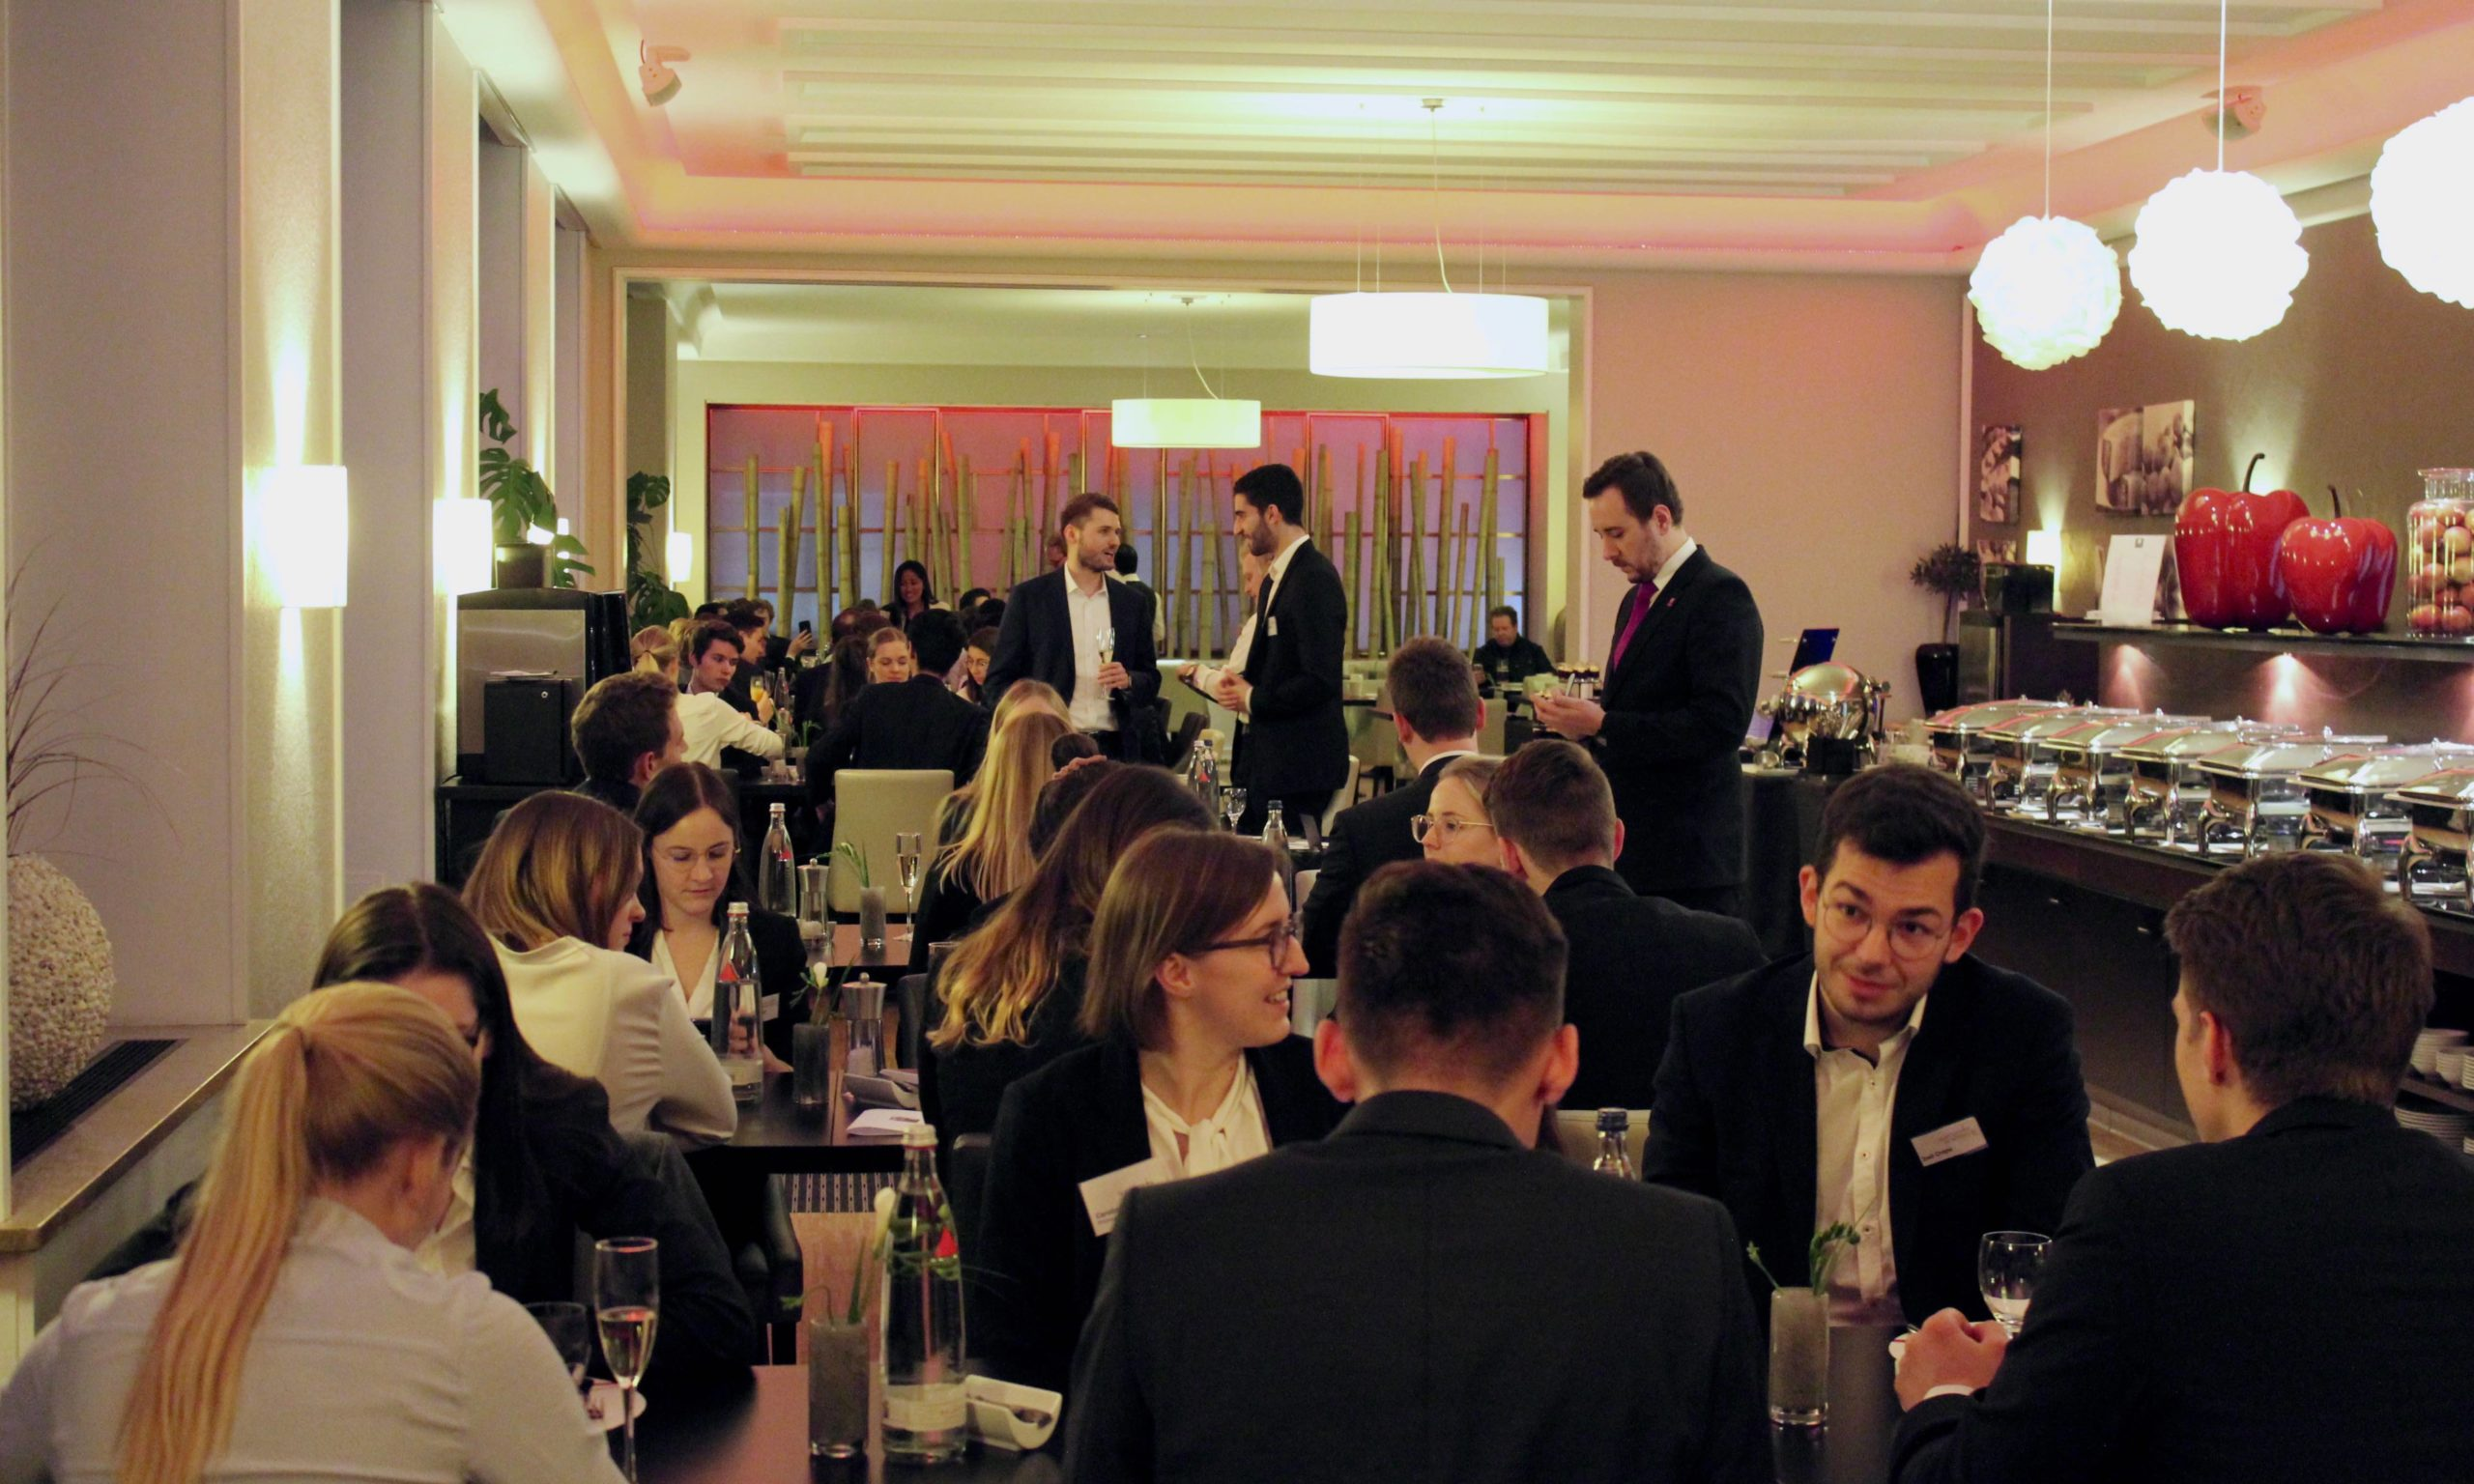 Business Dinner des Mannheim Symposiums 2020 von INTEGRA e.V: